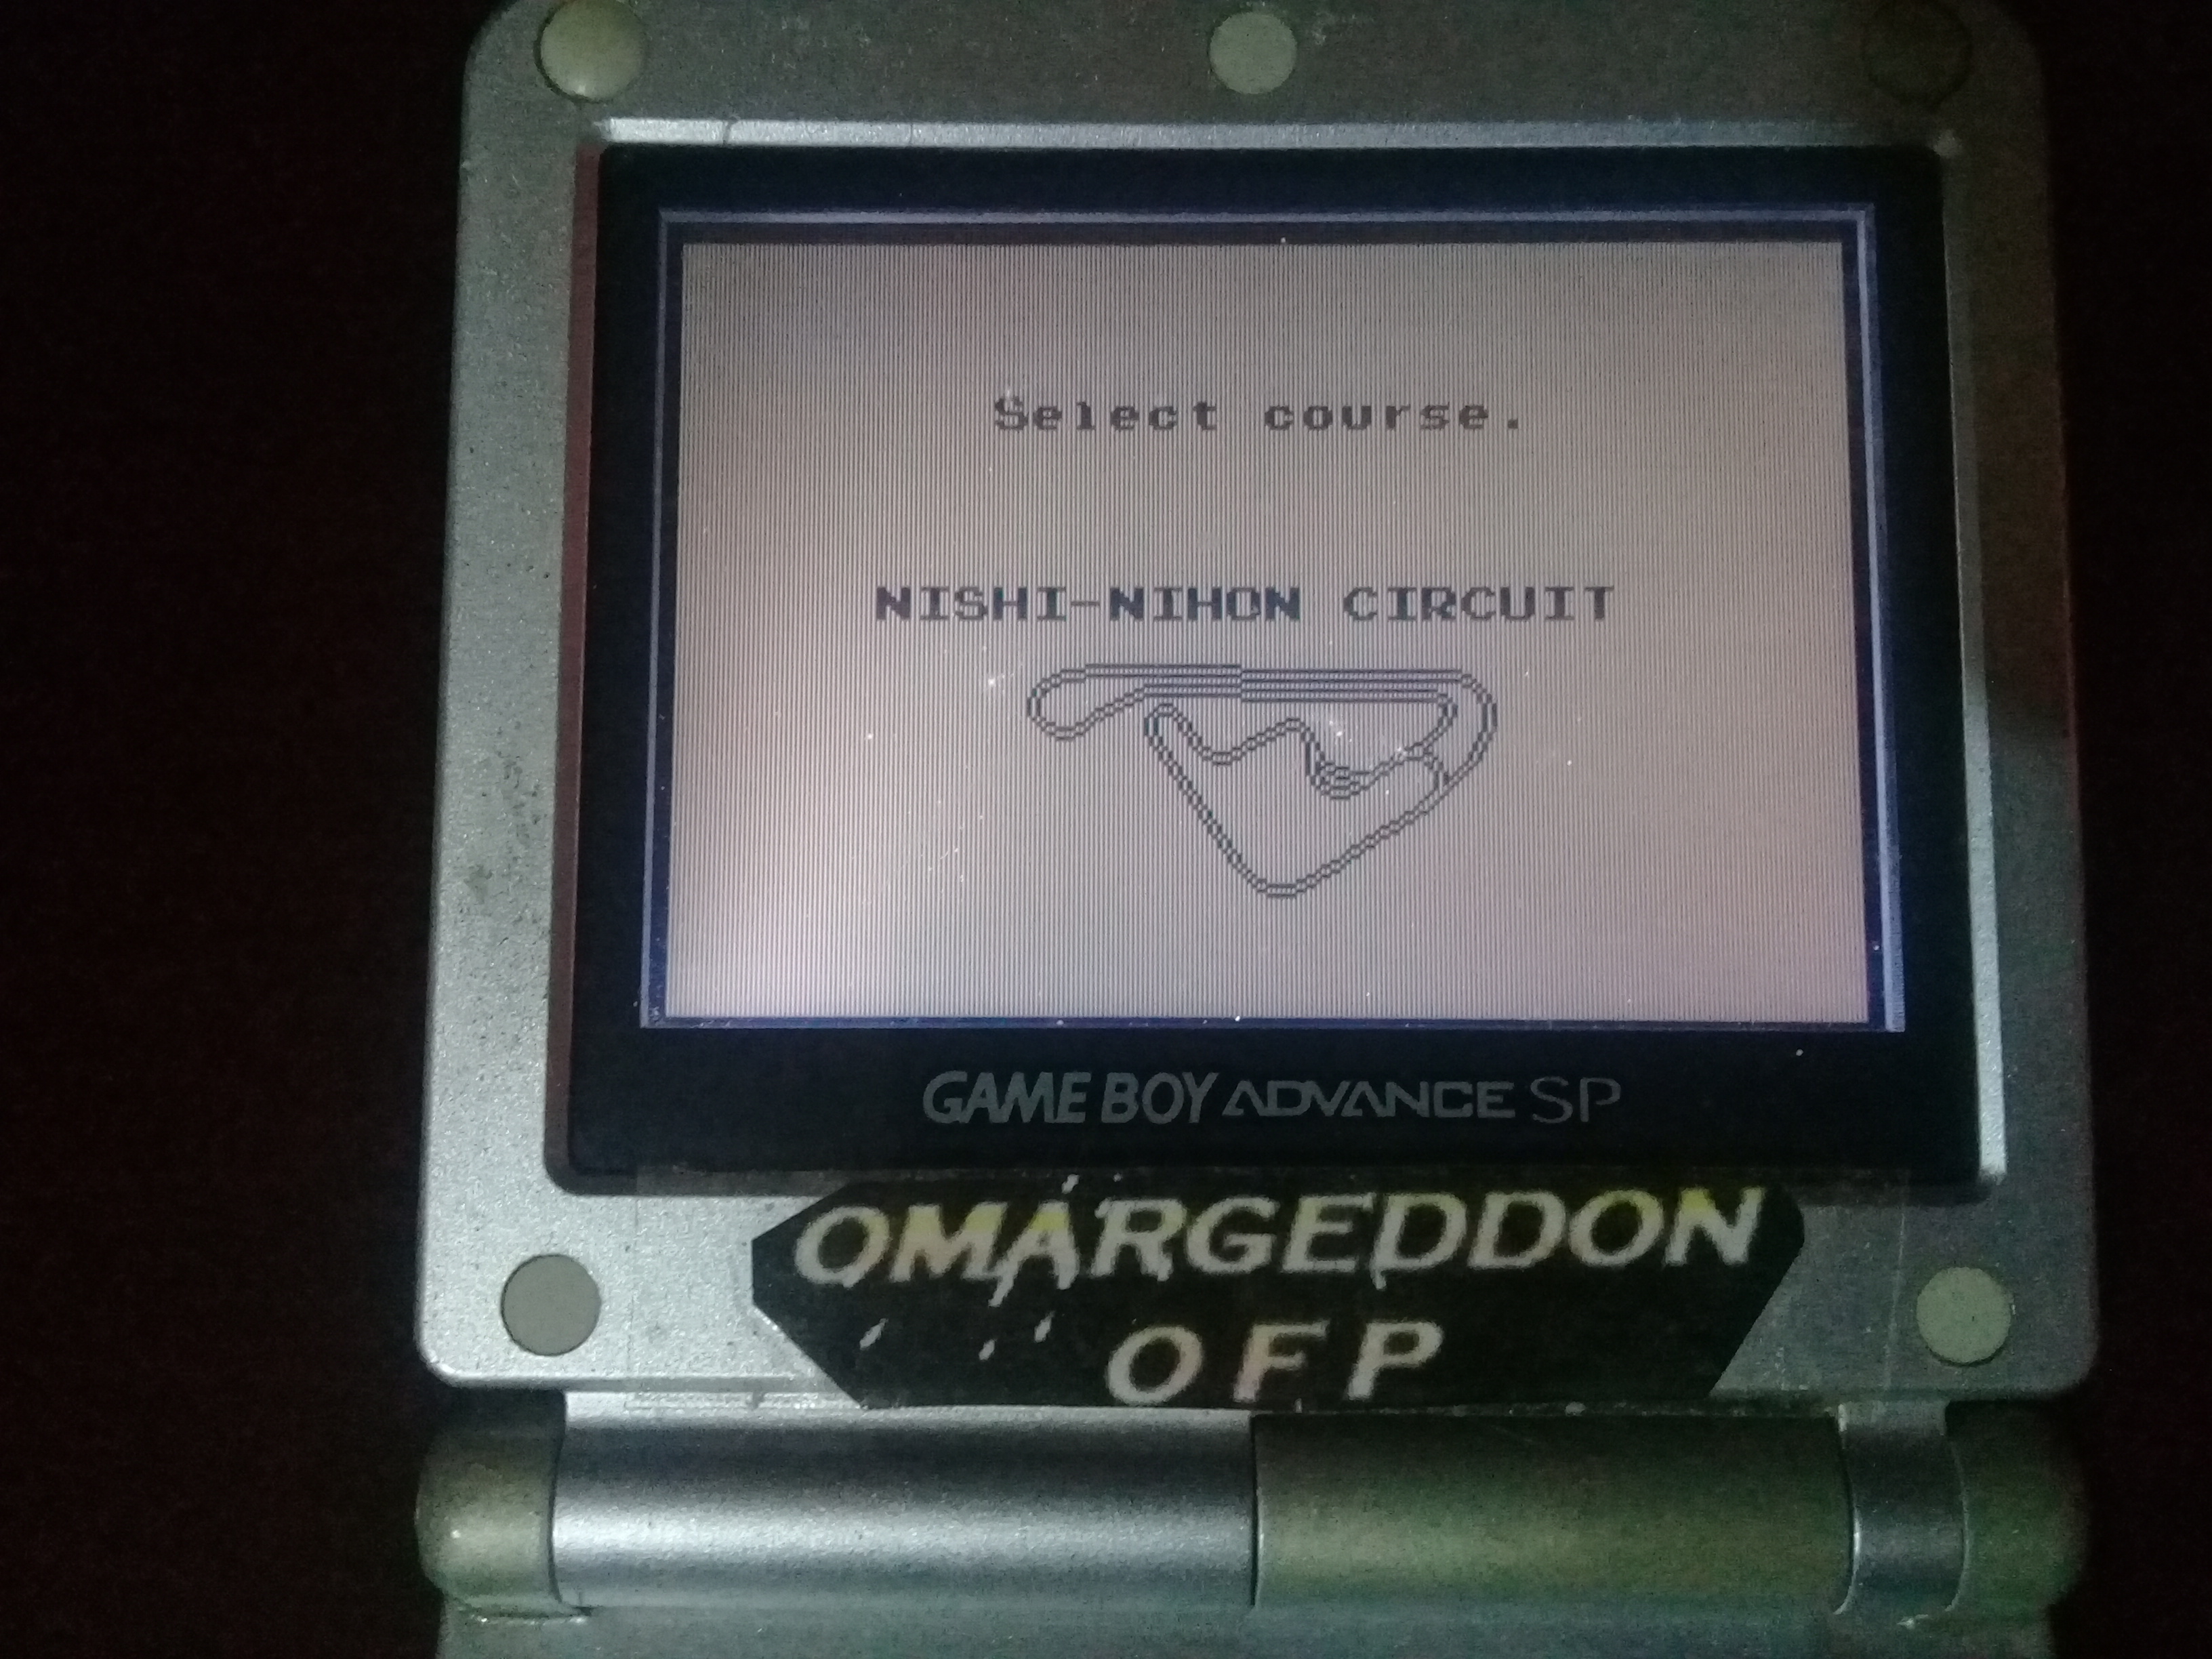 omargeddon: Racing Tamashii: Nishi-Nihon Circuit [Practice] [Best Lap] (Game Boy) 0:01:04.28 points on 2020-06-07 17:10:40